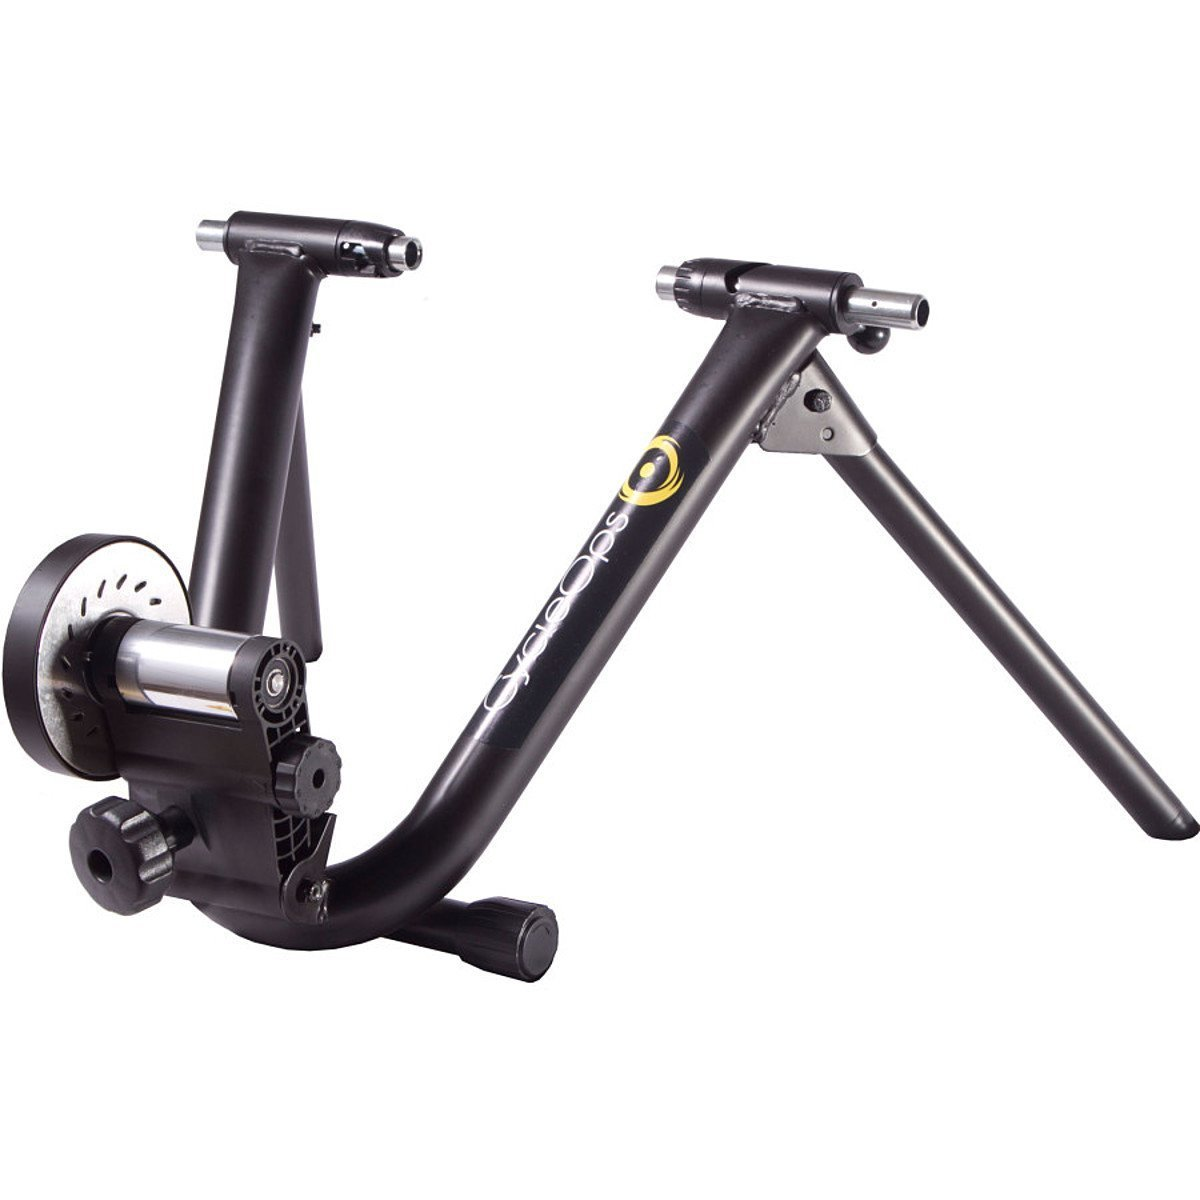 CycleOps Mag Trainer without Remote, Black by CycleOps (Image #1)